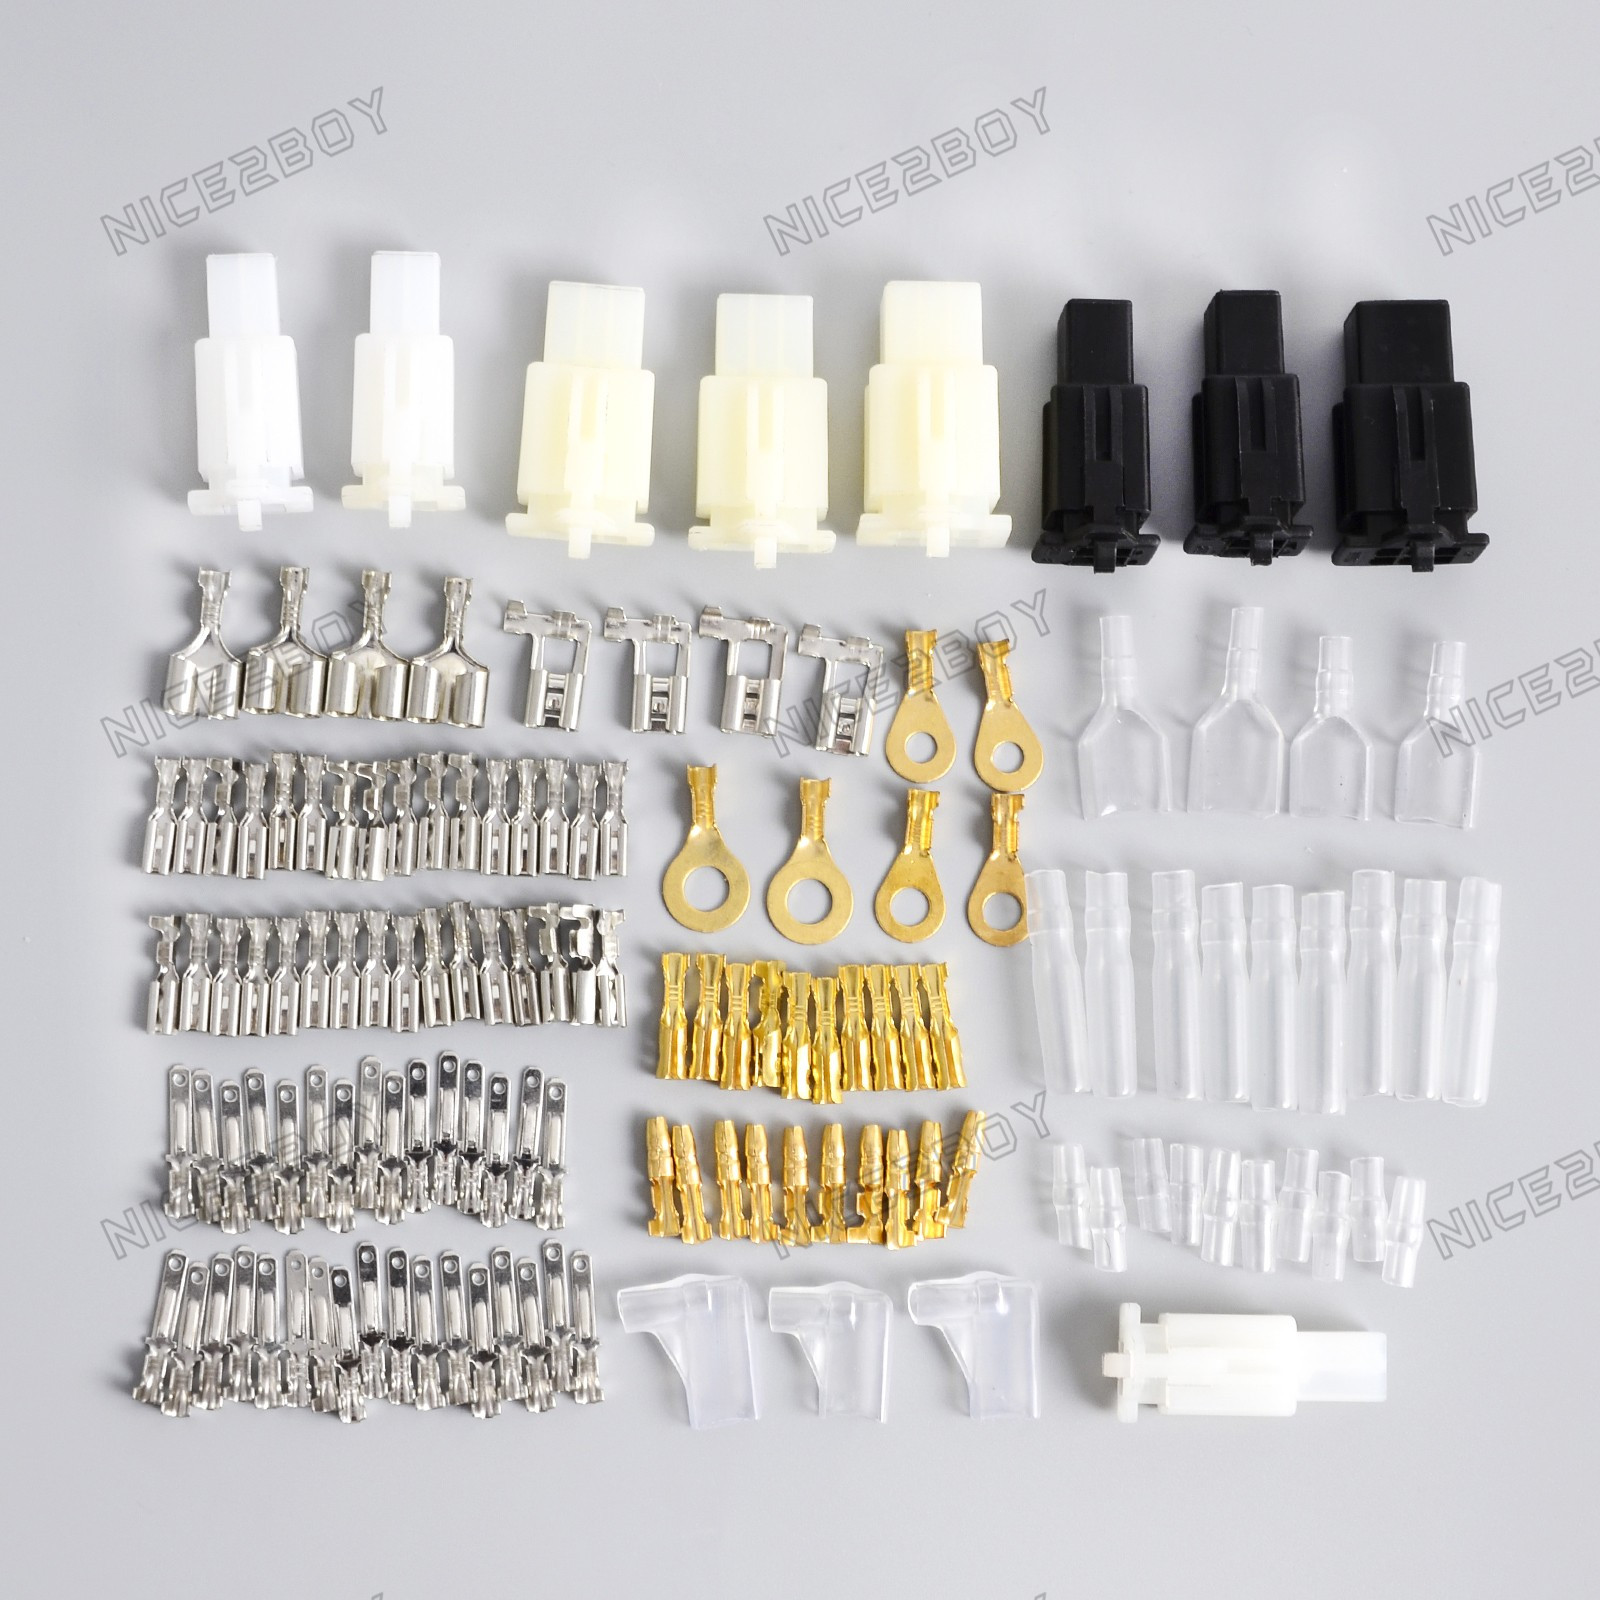 details about motorcycle auto wiring harness loom brass bullet connectors terminal repair kit  auto wiring harness connectors kit #5